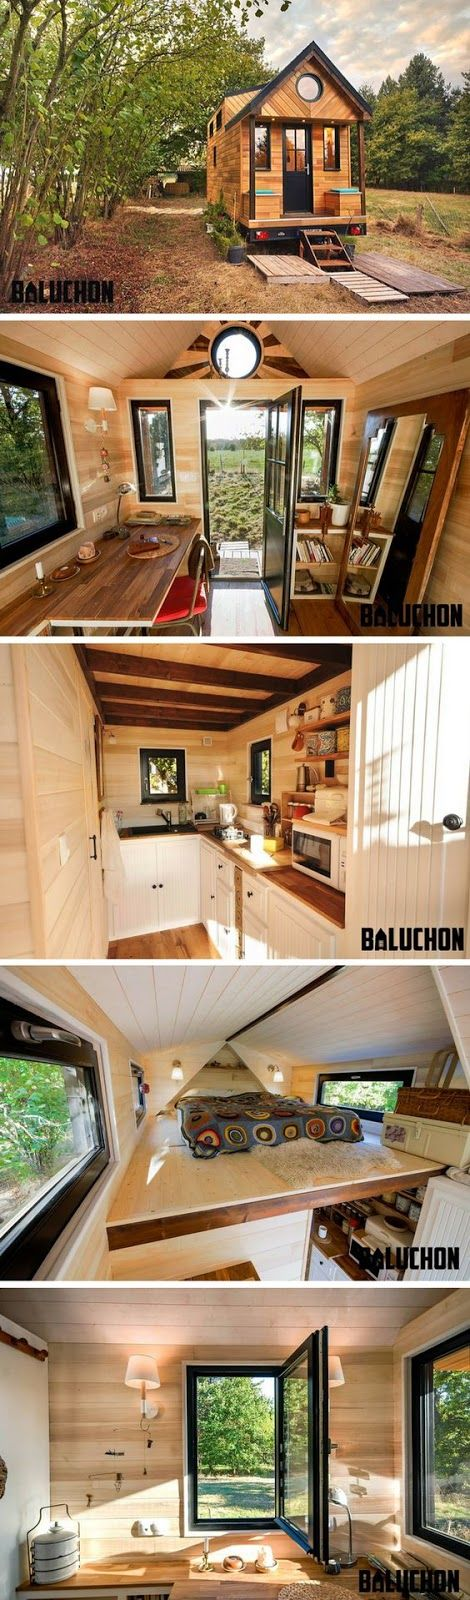 mytinyhousedirectory: The Avonlea By Baluchon